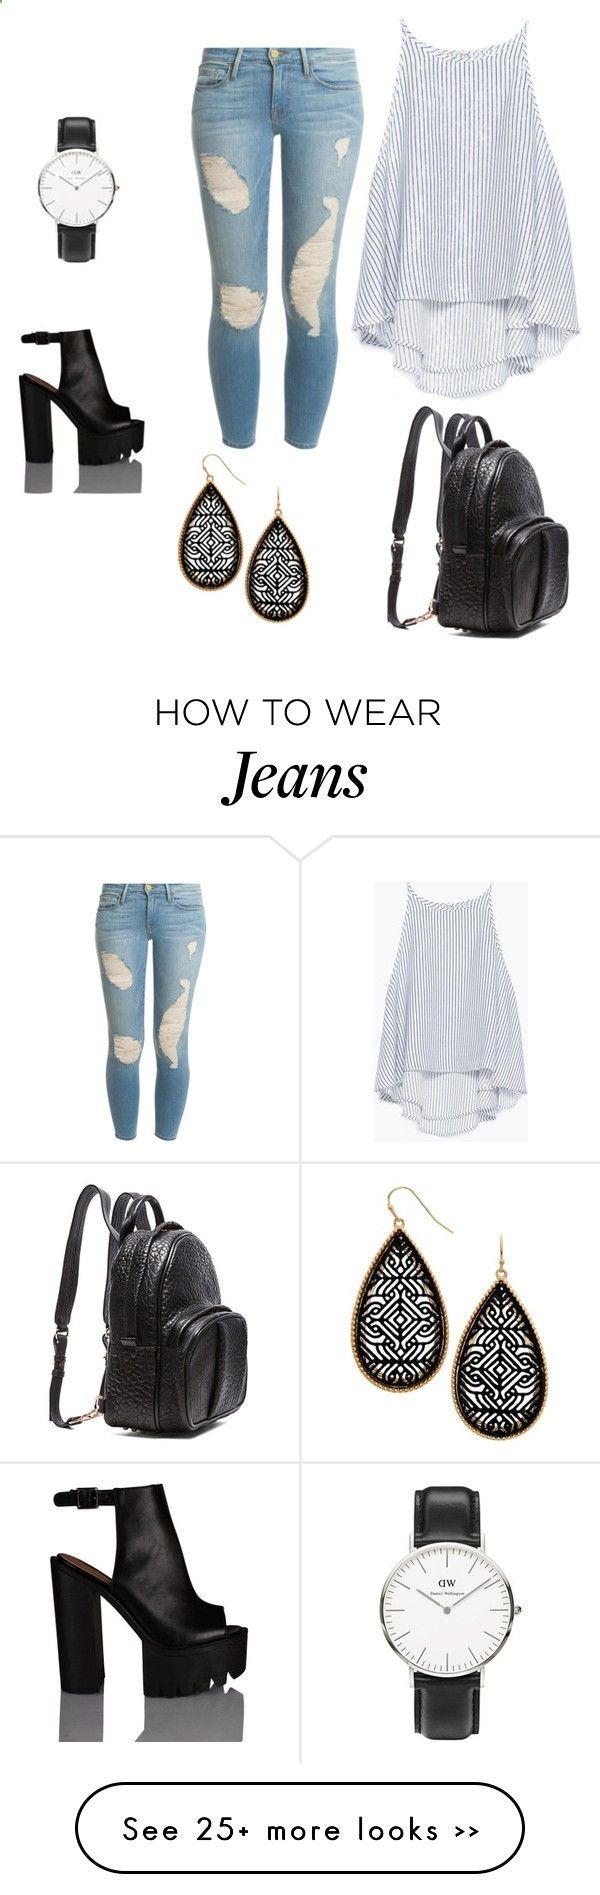 casual with jeans by elisa-lee-heng-hui on Polyvore